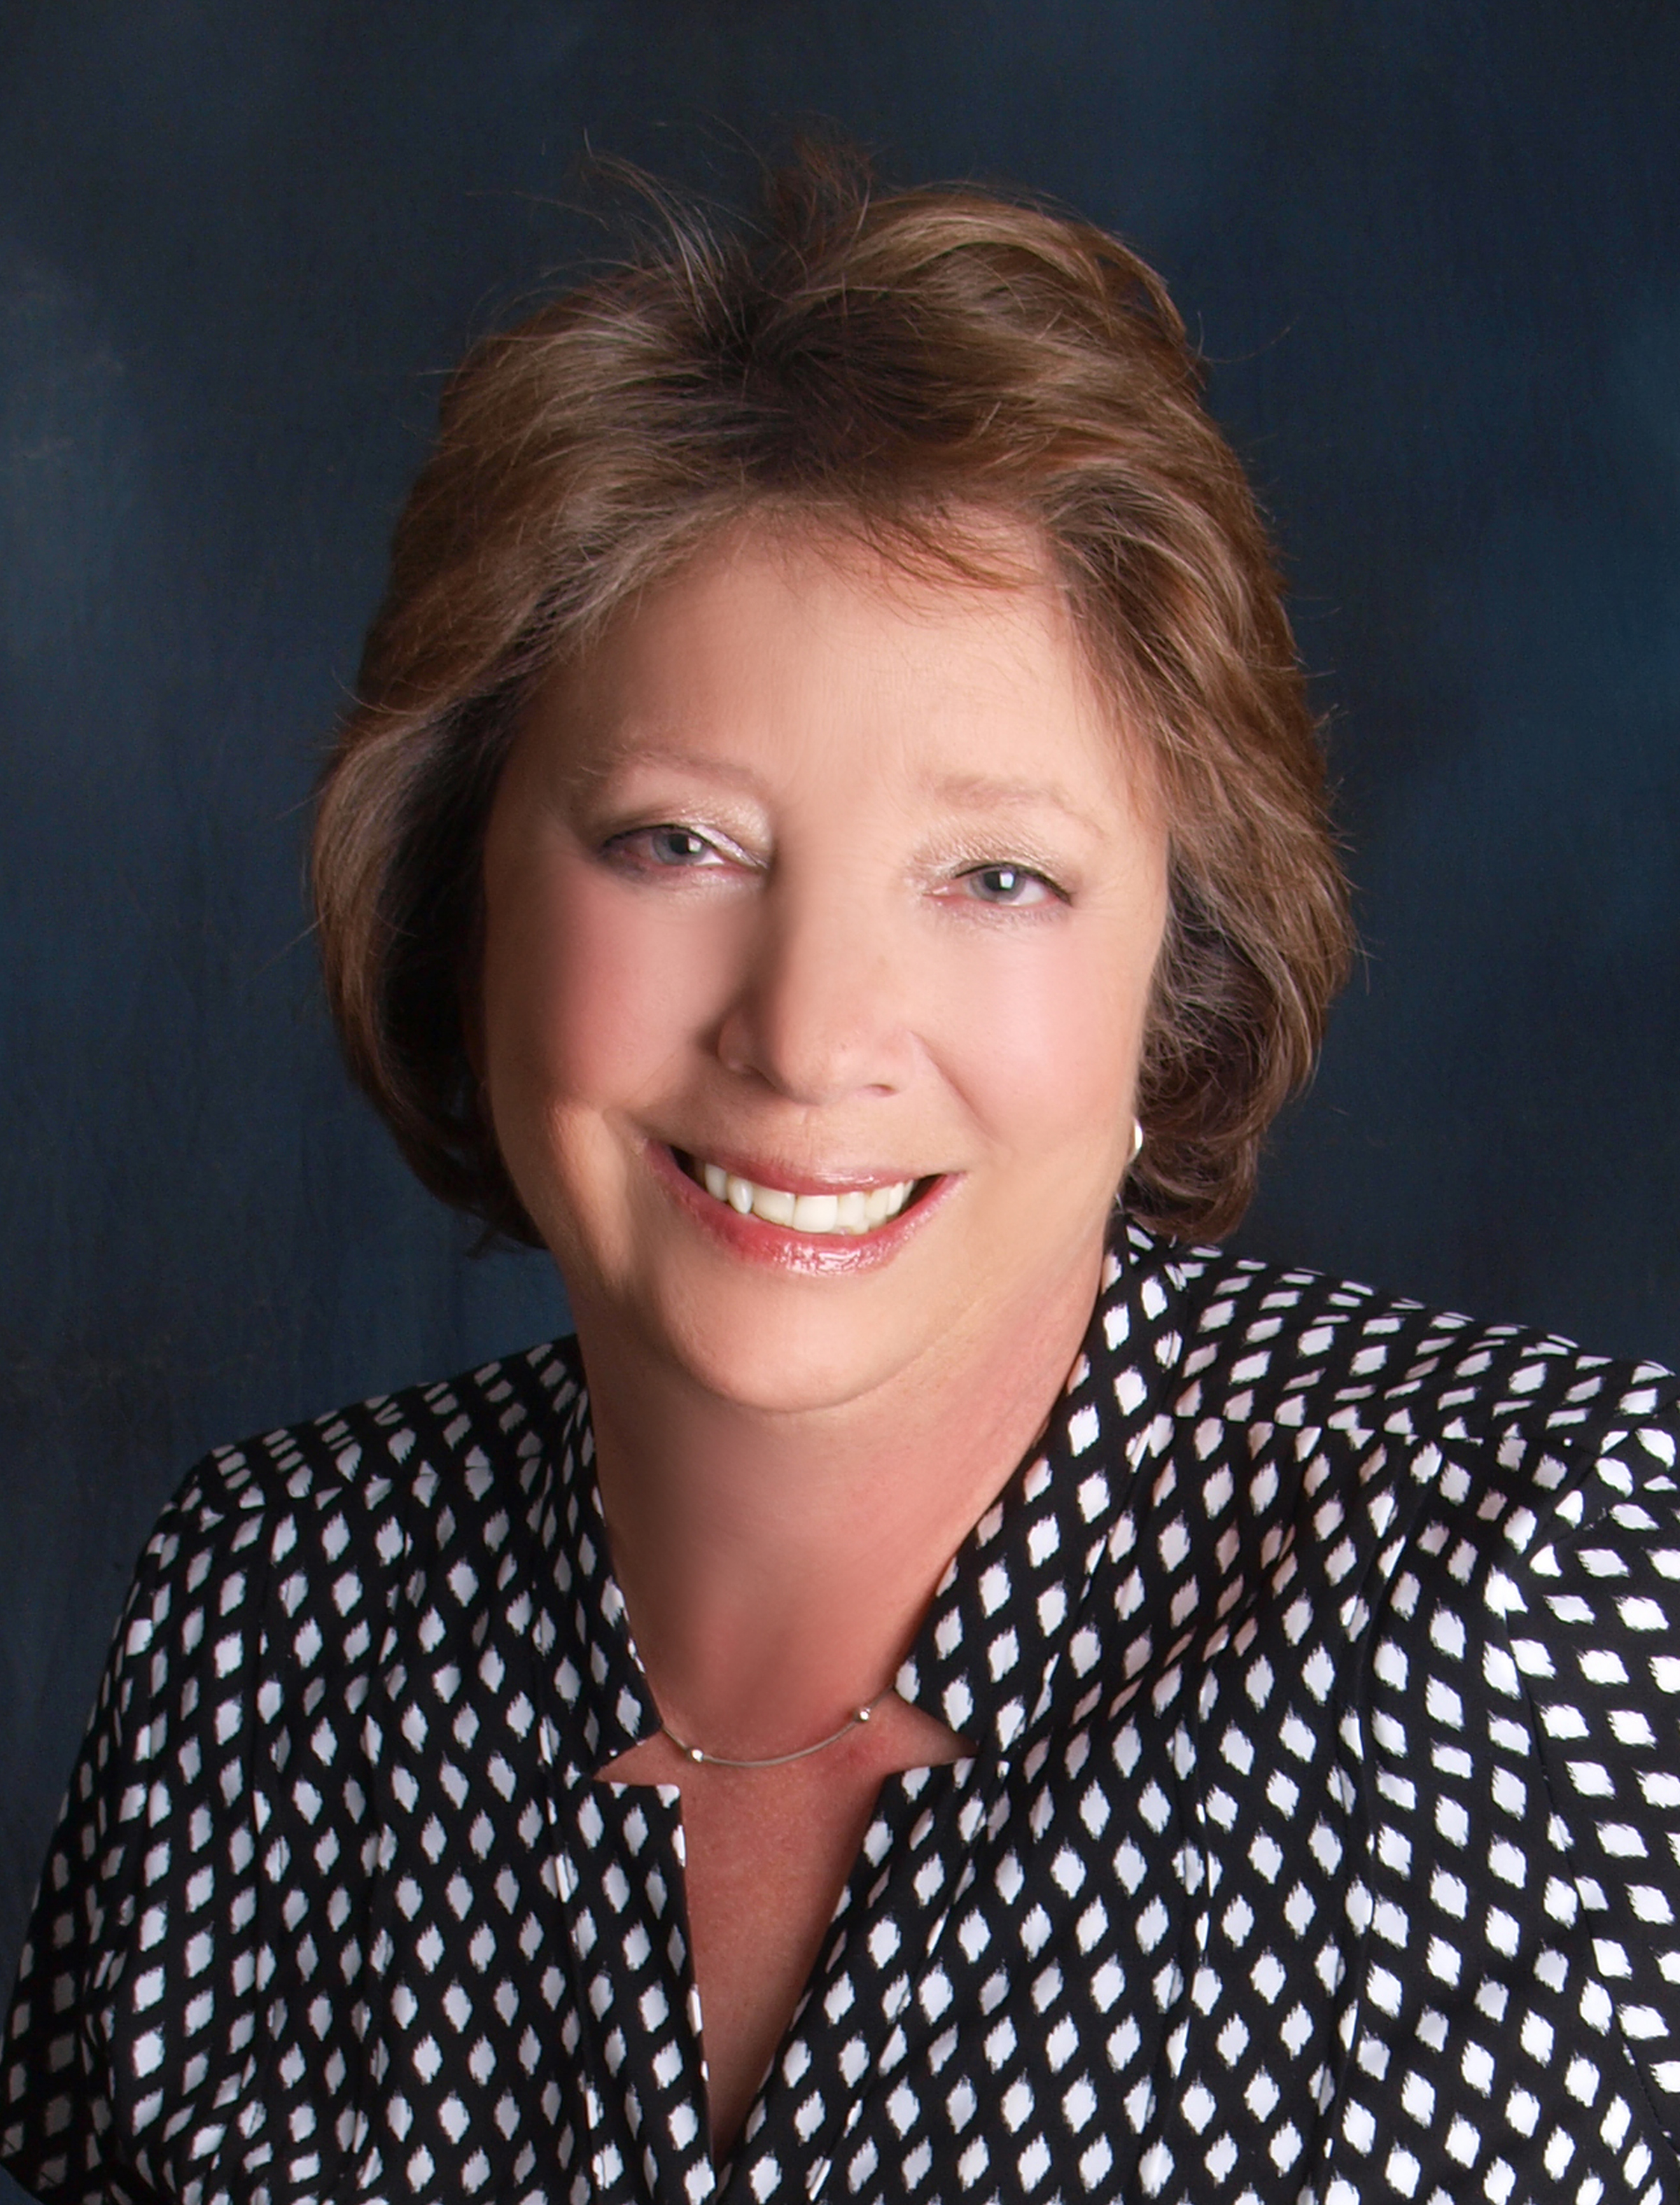 Jo-Ann author photo